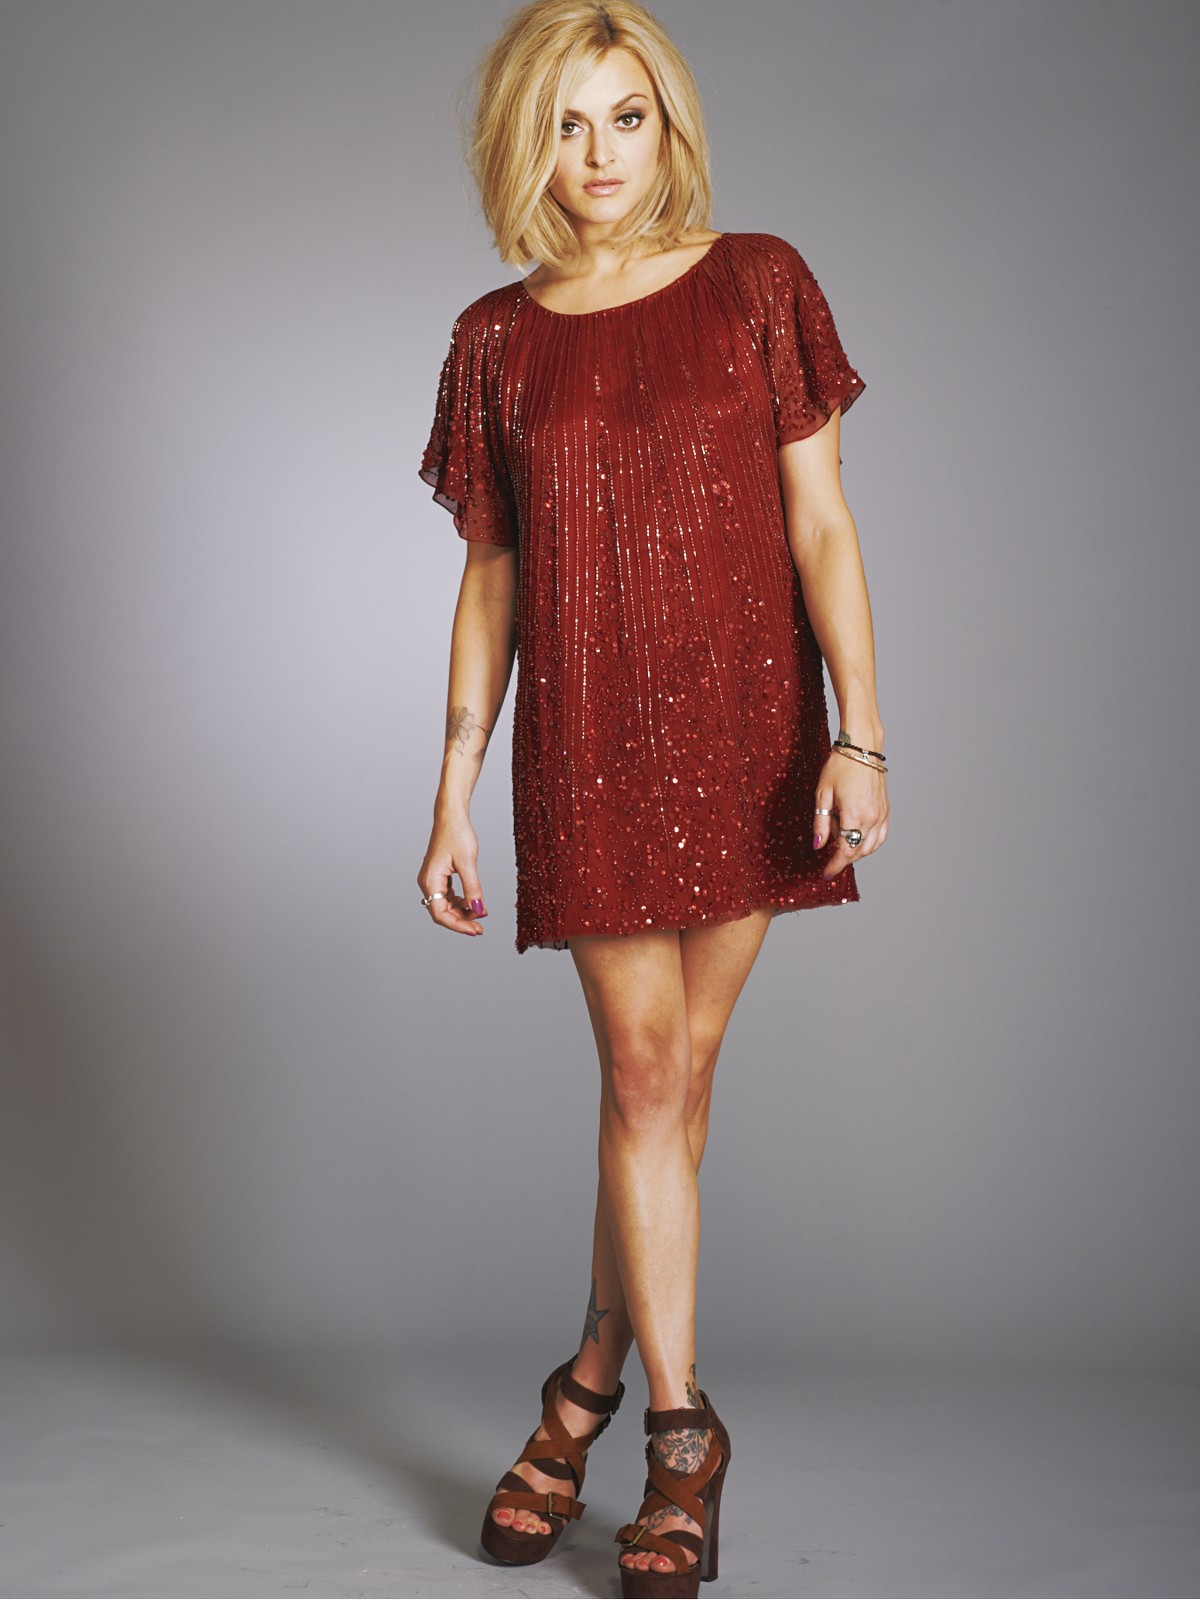 7559117f Fearne Cotton's red sparkly dress in very.co.uk TV ad | Fashion ...